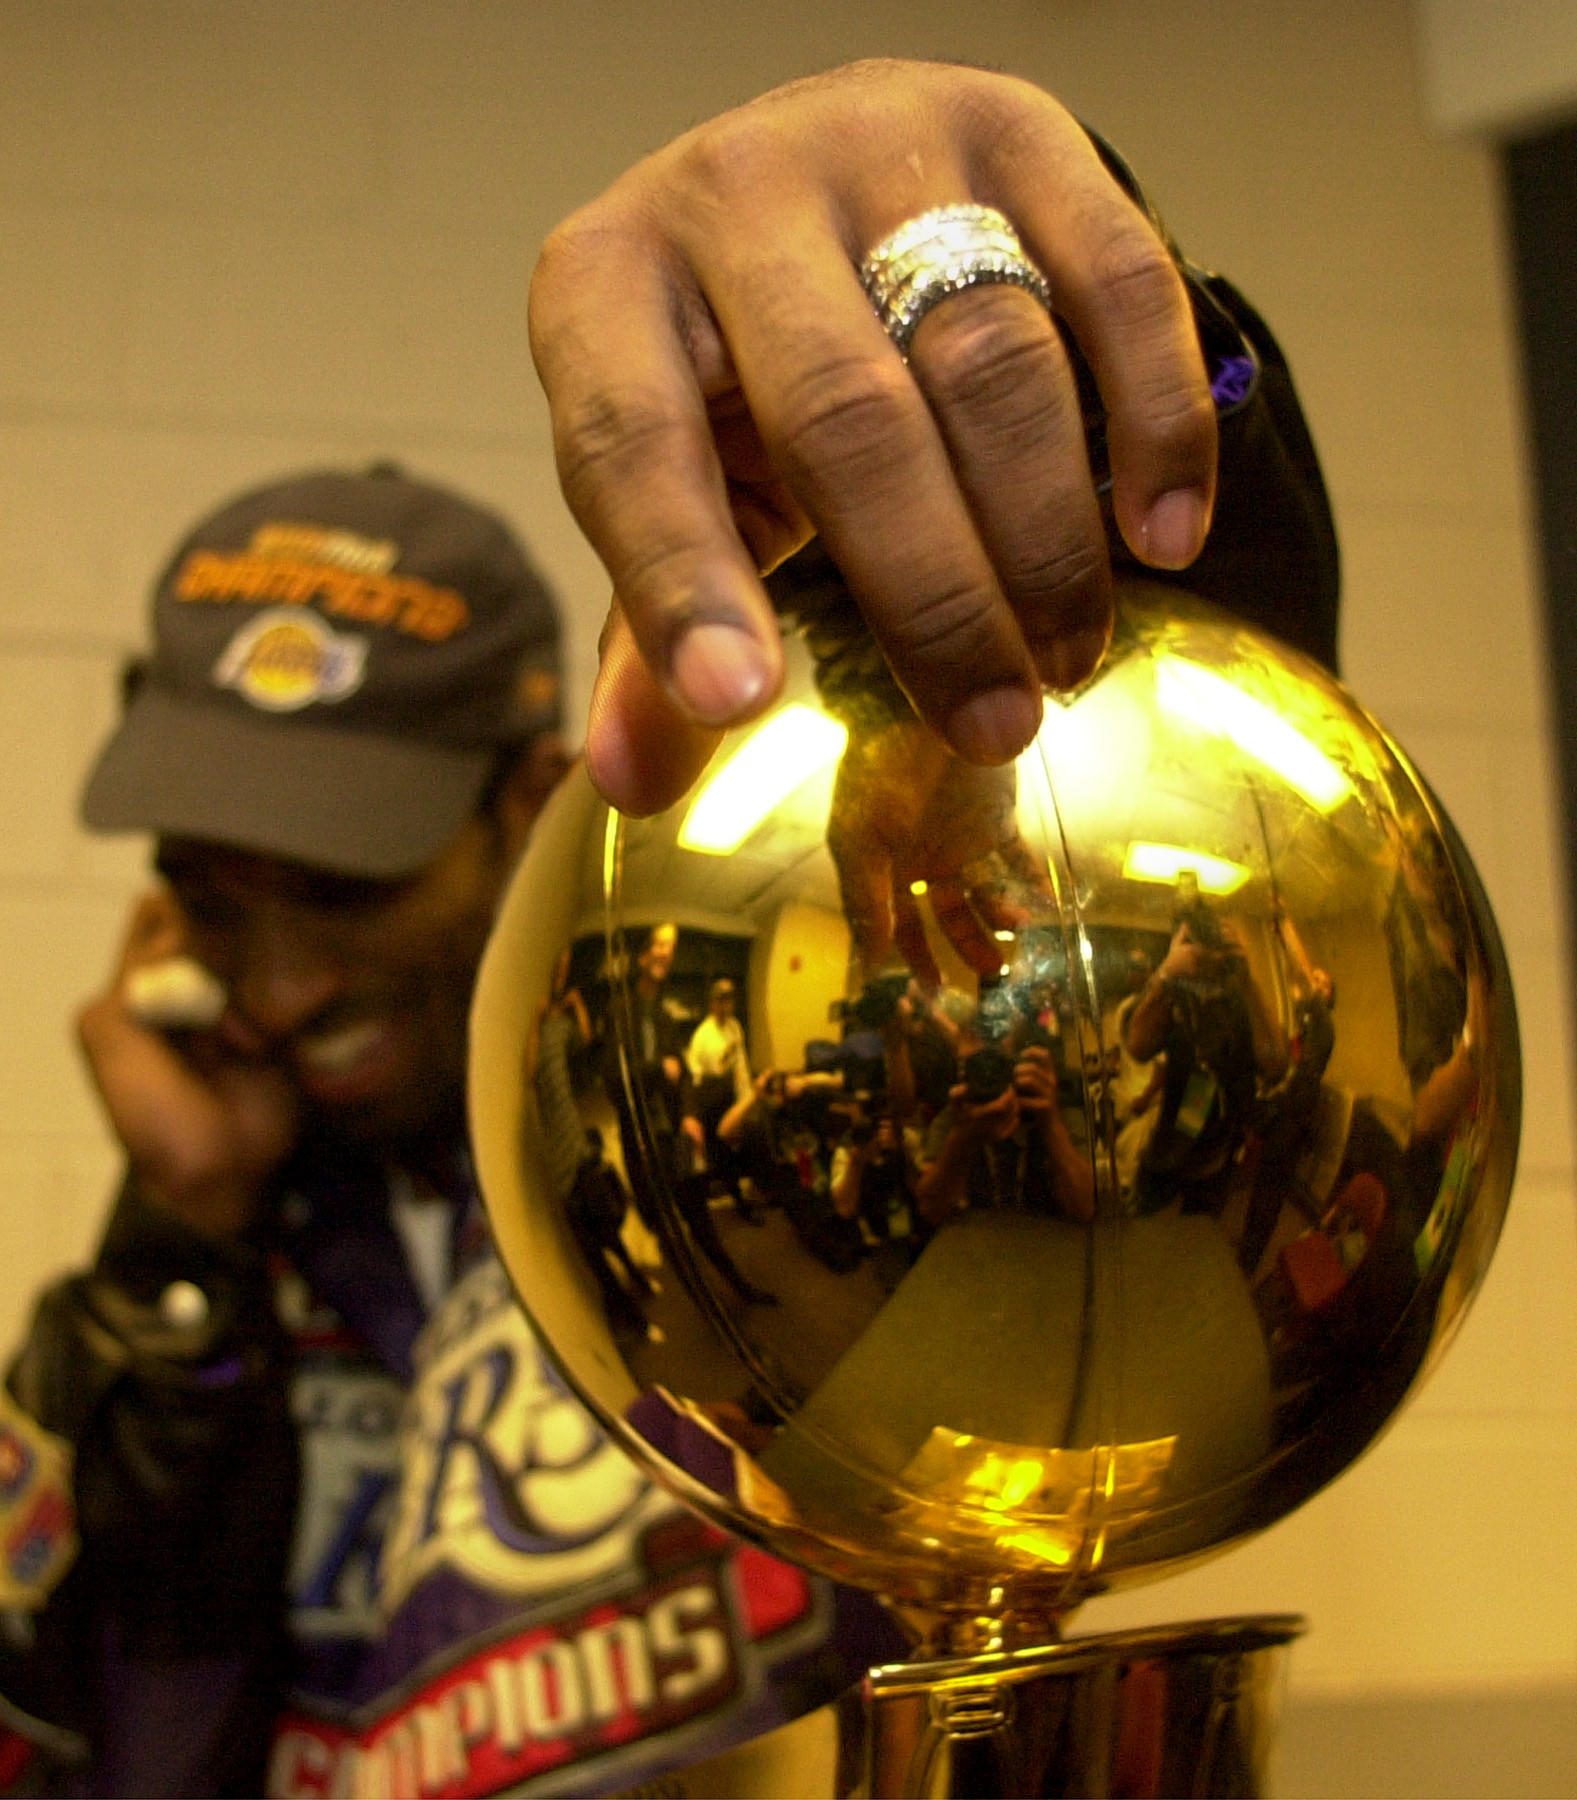 Kobe attempts a reverse layup along the baseline. (Robert Gauthier / Los Angeles Times). Kobe poses with the Championship trophy.